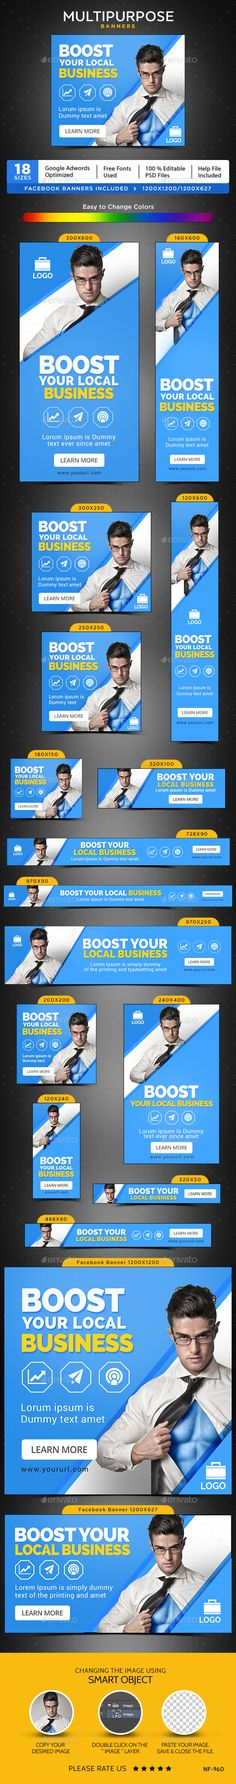 Multipurpose Web Banners Template PSD #ad #promotion #design Download: http://graphicriver.net/item/multipurpose-banners/14276102?ref=ksioks